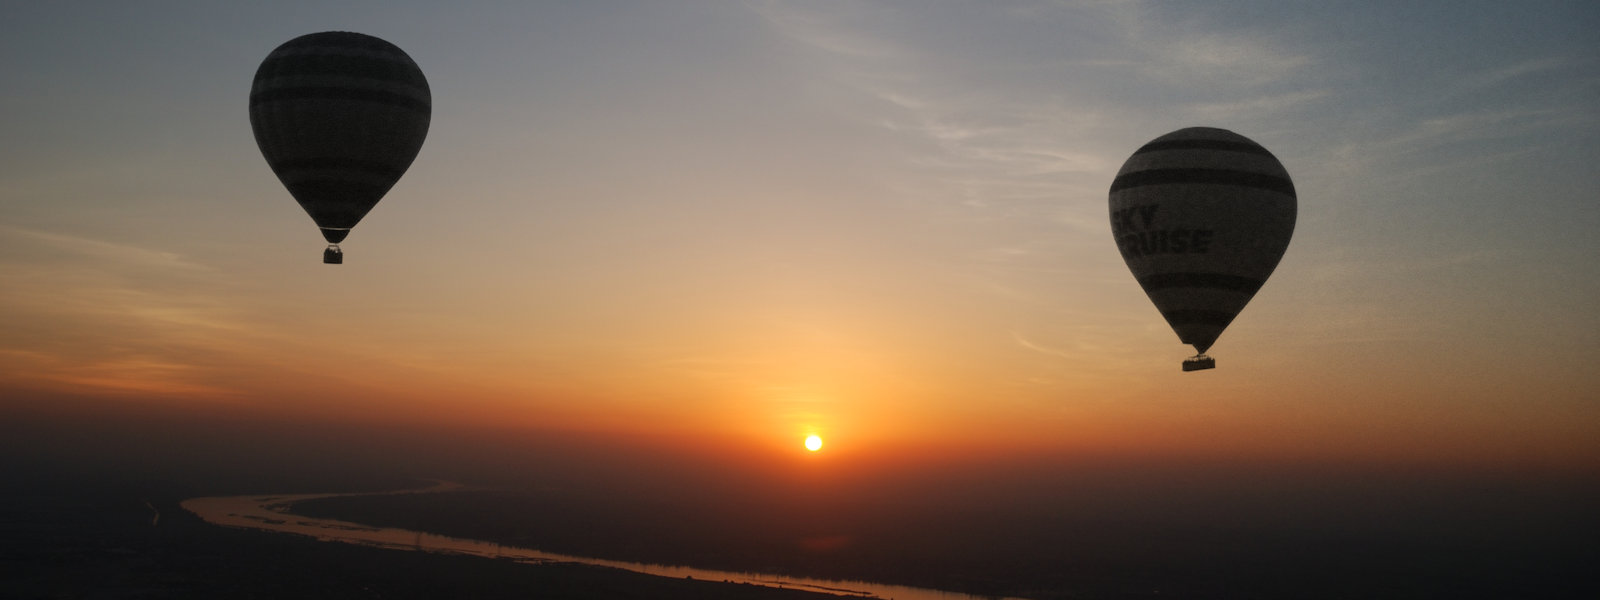 Dawn Hot Air Balloon Ride, Valley of the Kings, Luxor, Egypt